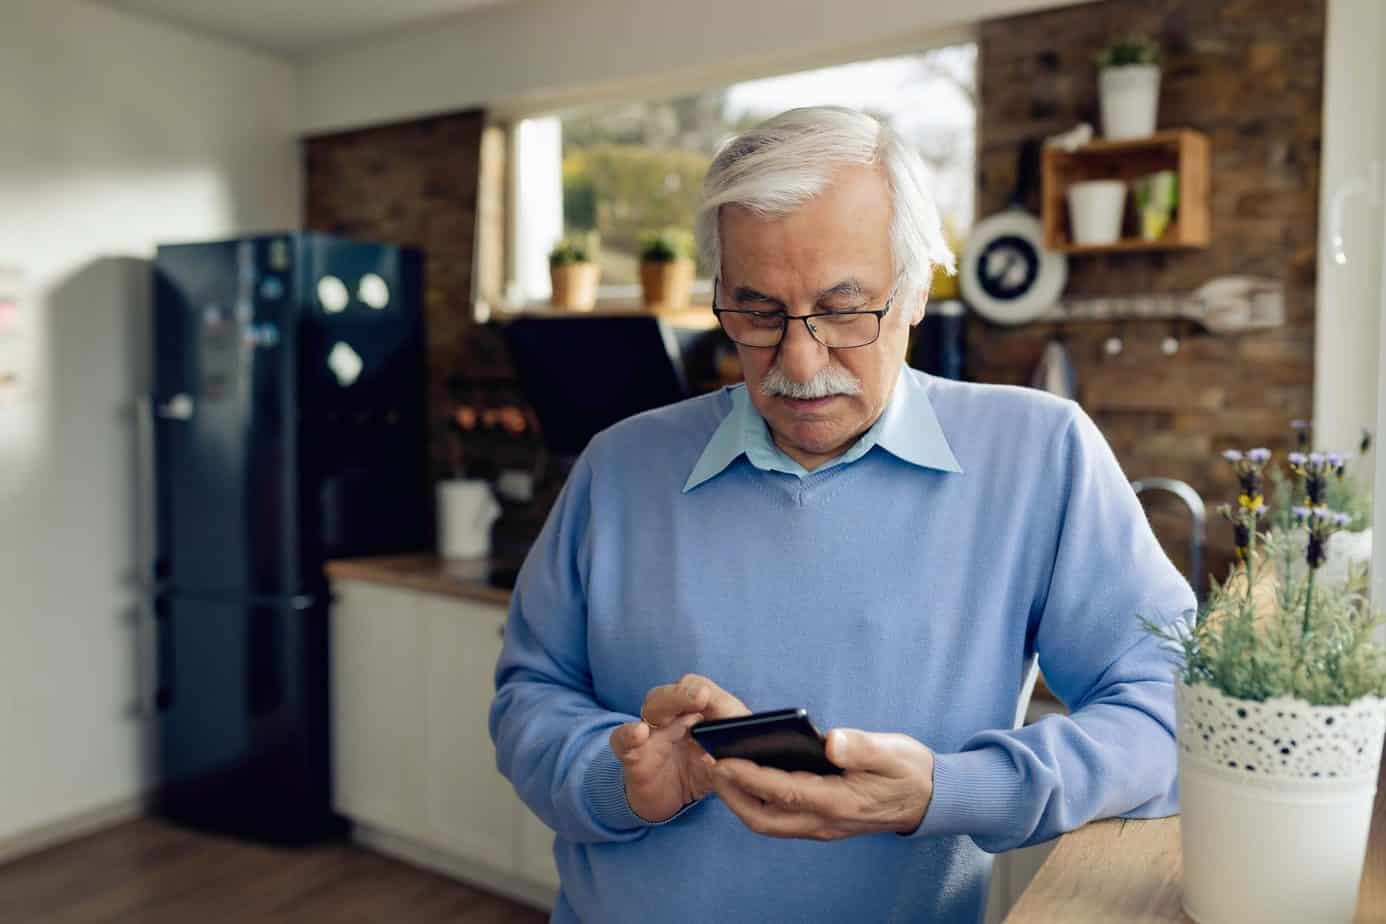 Senior man text messaging on mobile phone in the kitchen